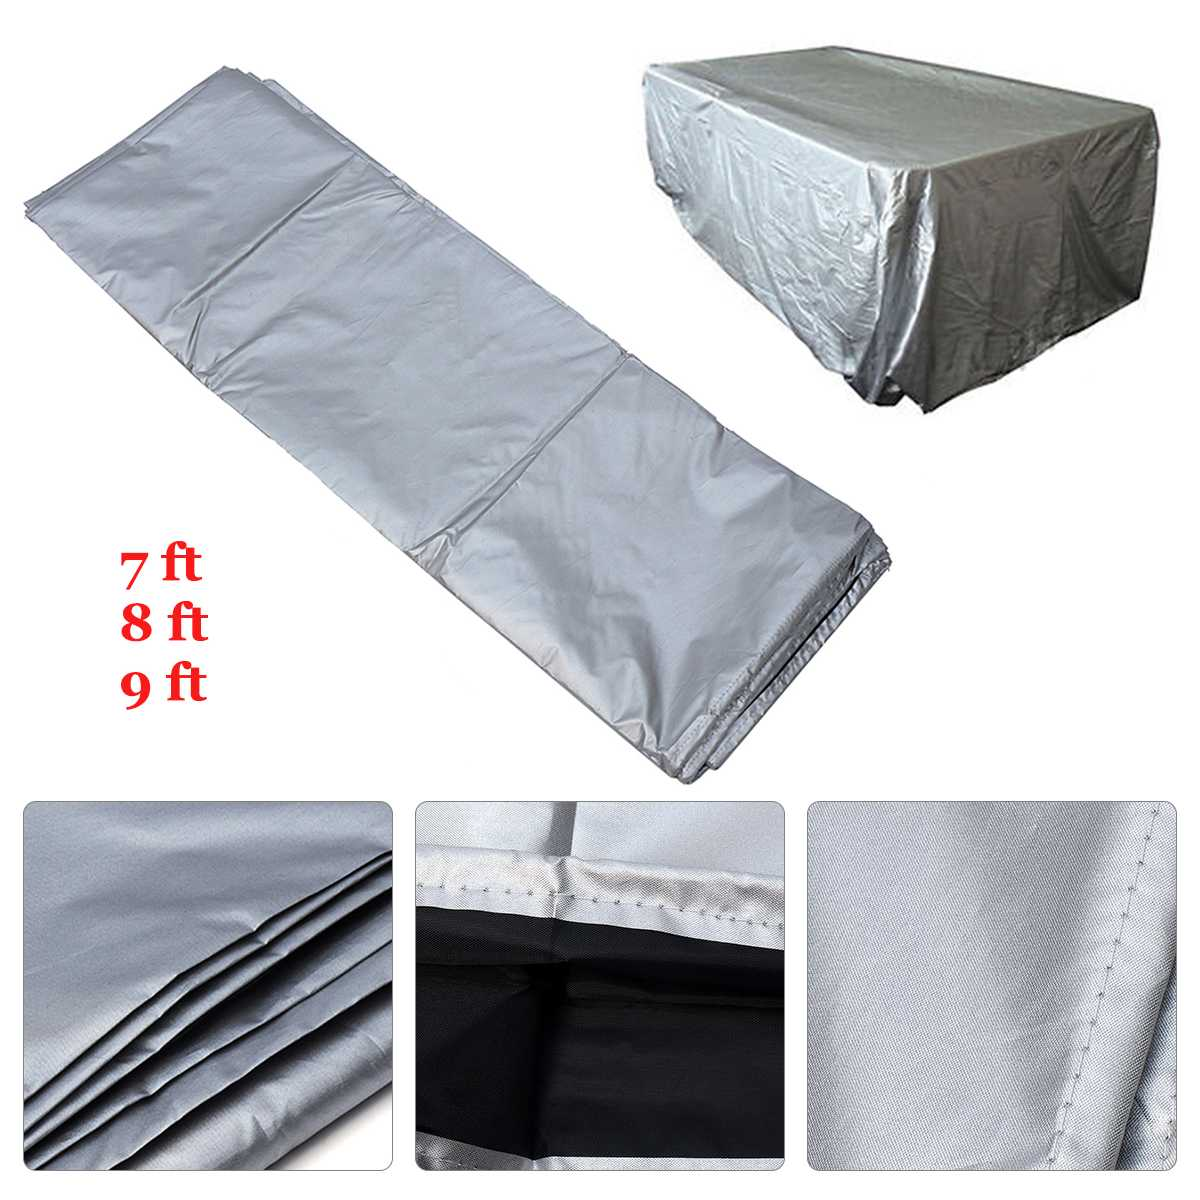 7/8/9 Foot Universal Waterproof DustProof Cloth for Rectangle-Shaped Pool Table Billiard Cover Tableclo Snooker Accessory7/8/9 Foot Universal Waterproof DustProof Cloth for Rectangle-Shaped Pool Table Billiard Cover Tableclo Snooker Accessory